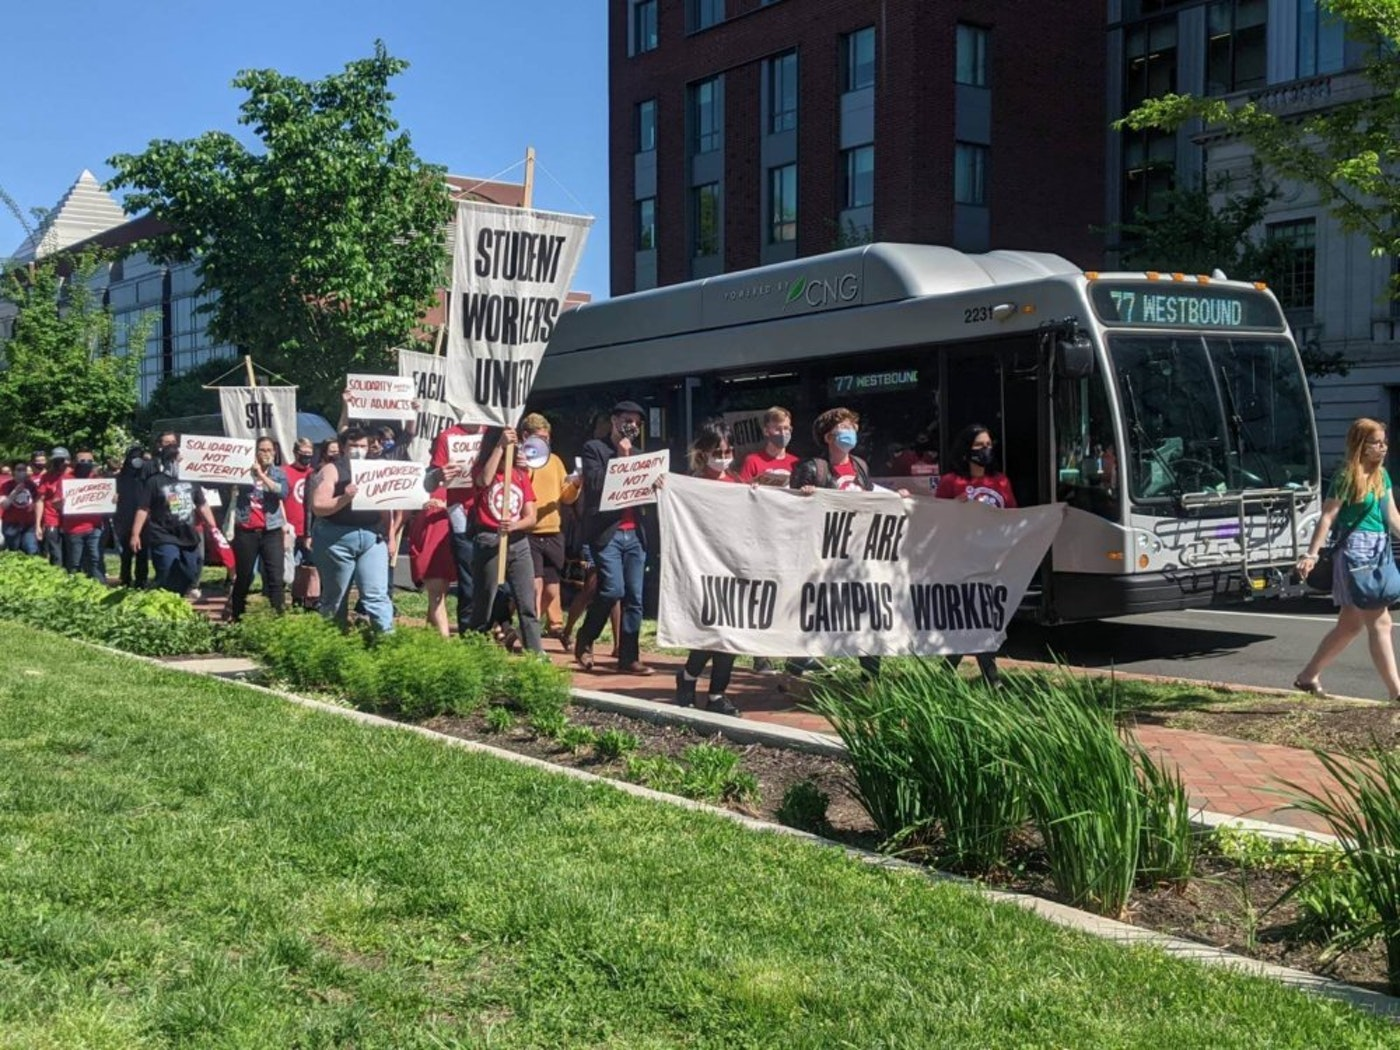 VCU union members march to raise awareness for their demands